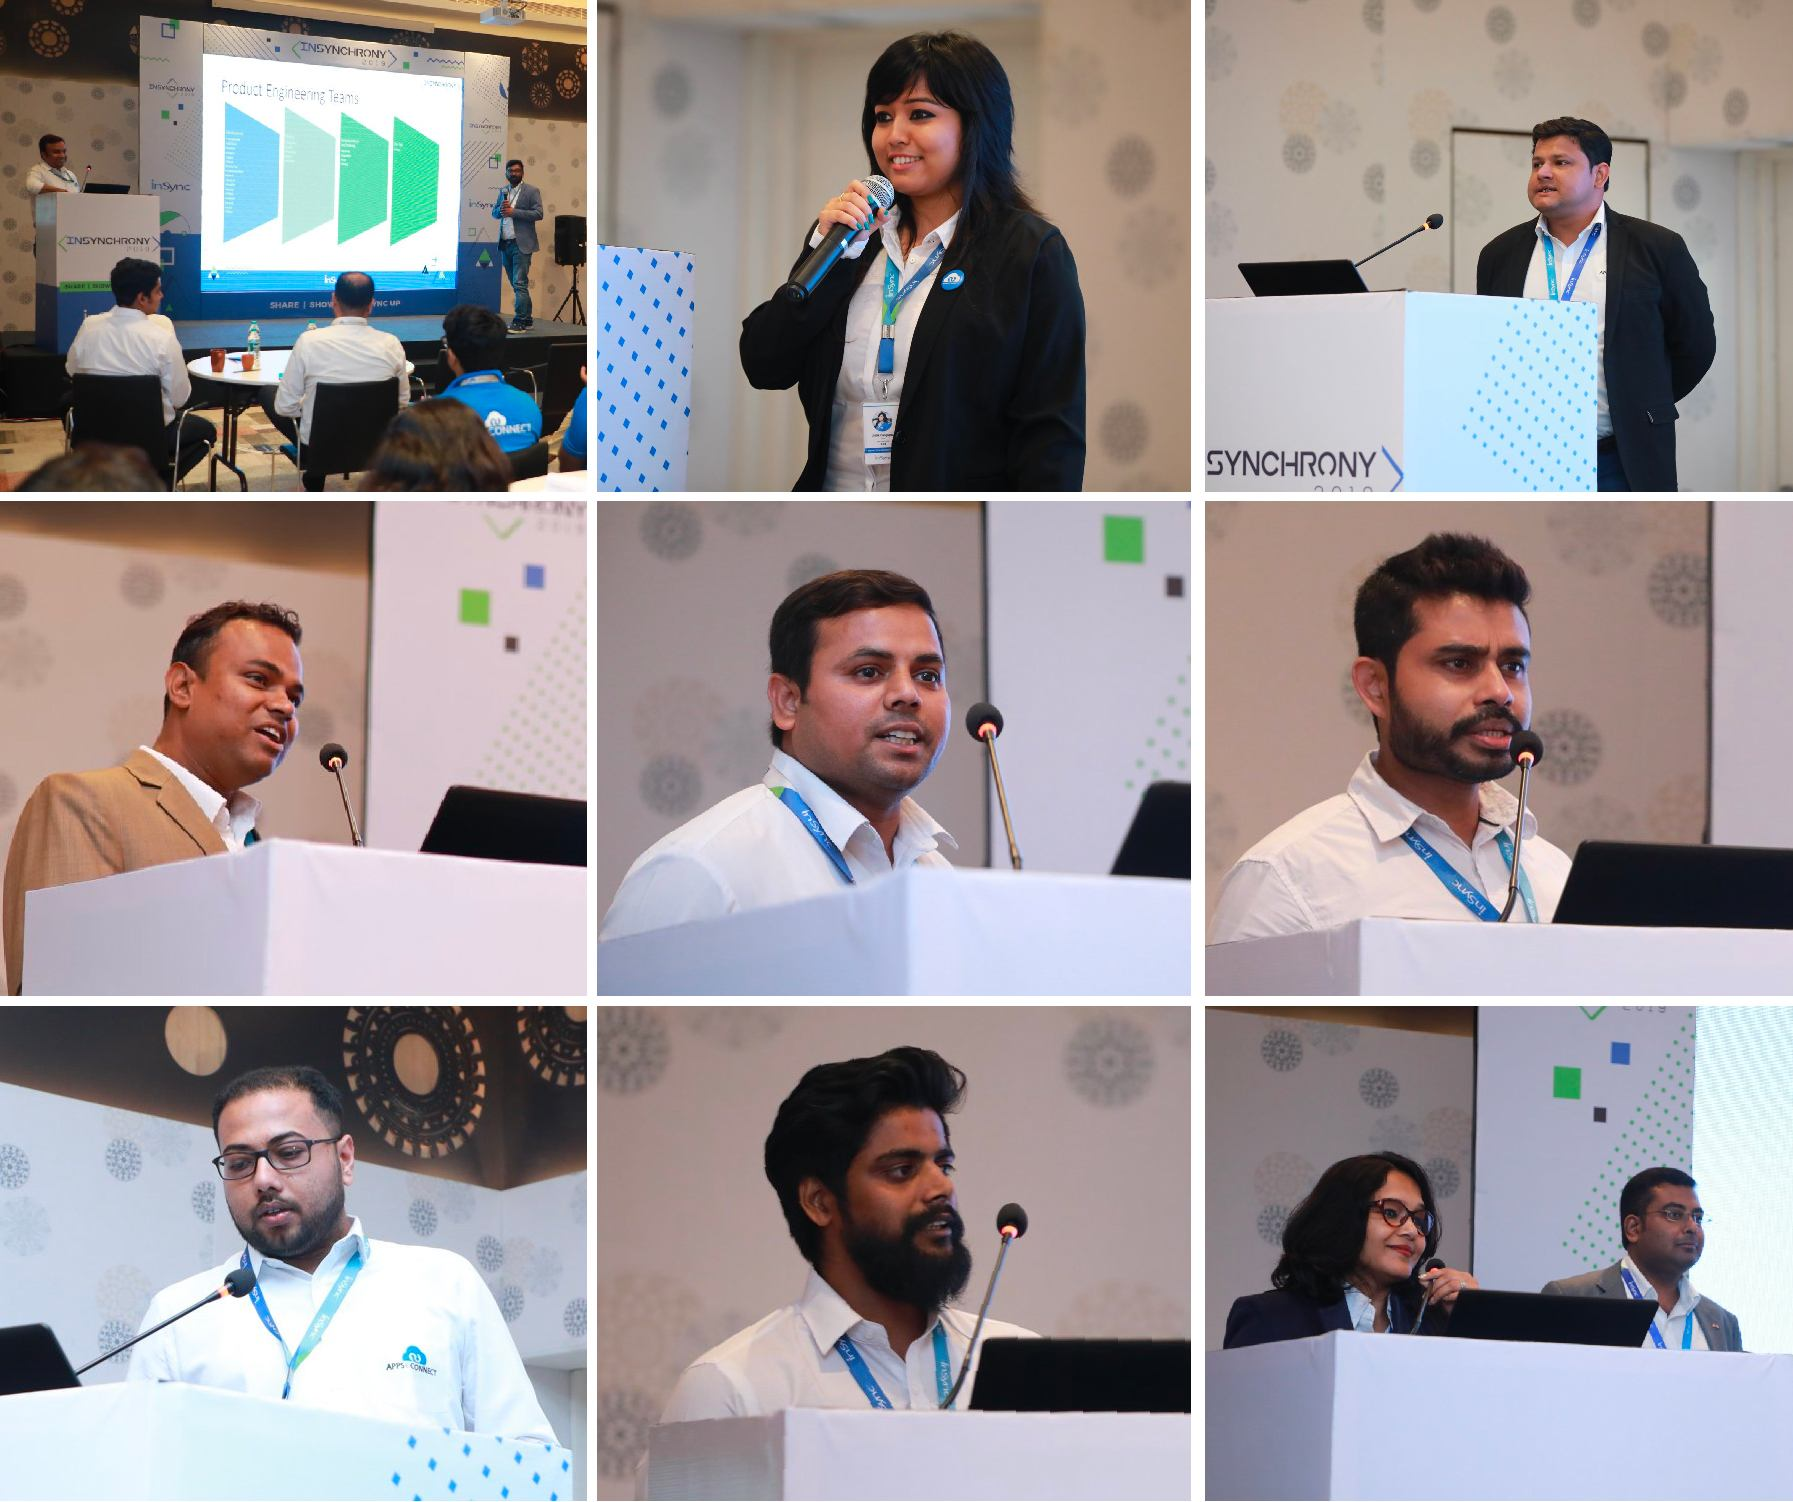 dashboard-presentations-by-various-departments-at-InSynchrony-2019